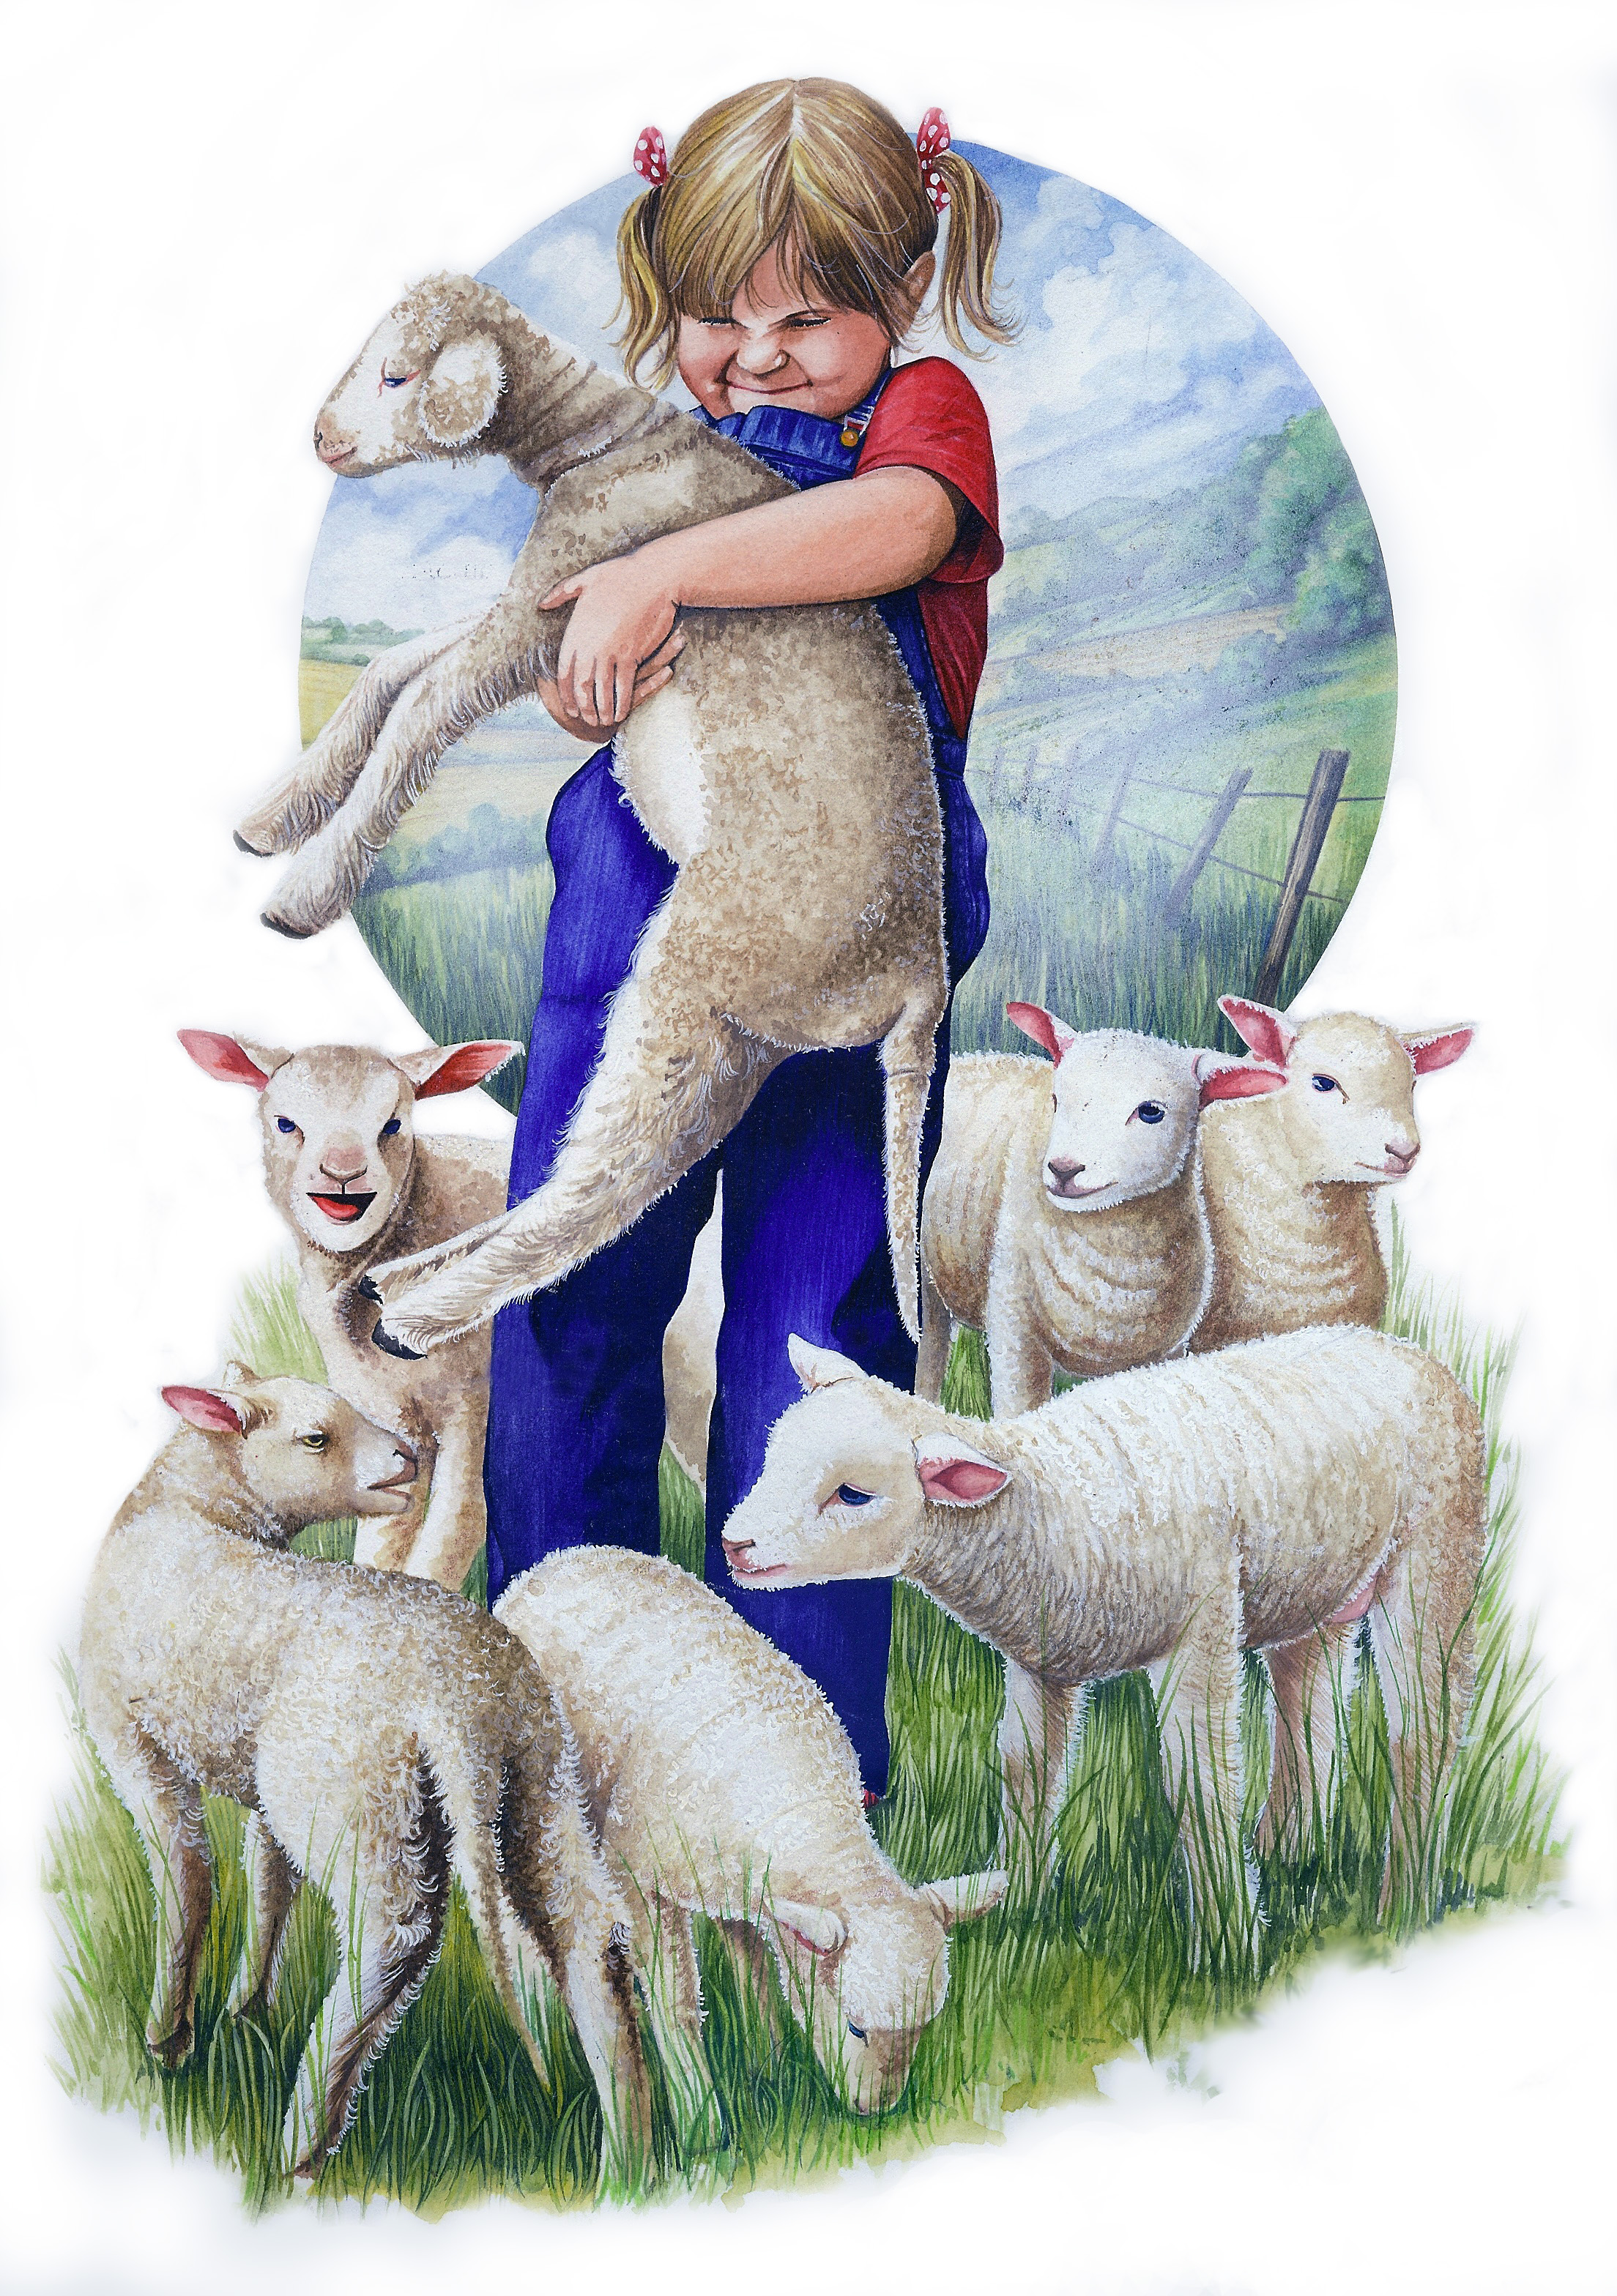 Little+girl+and+lamb.jpg